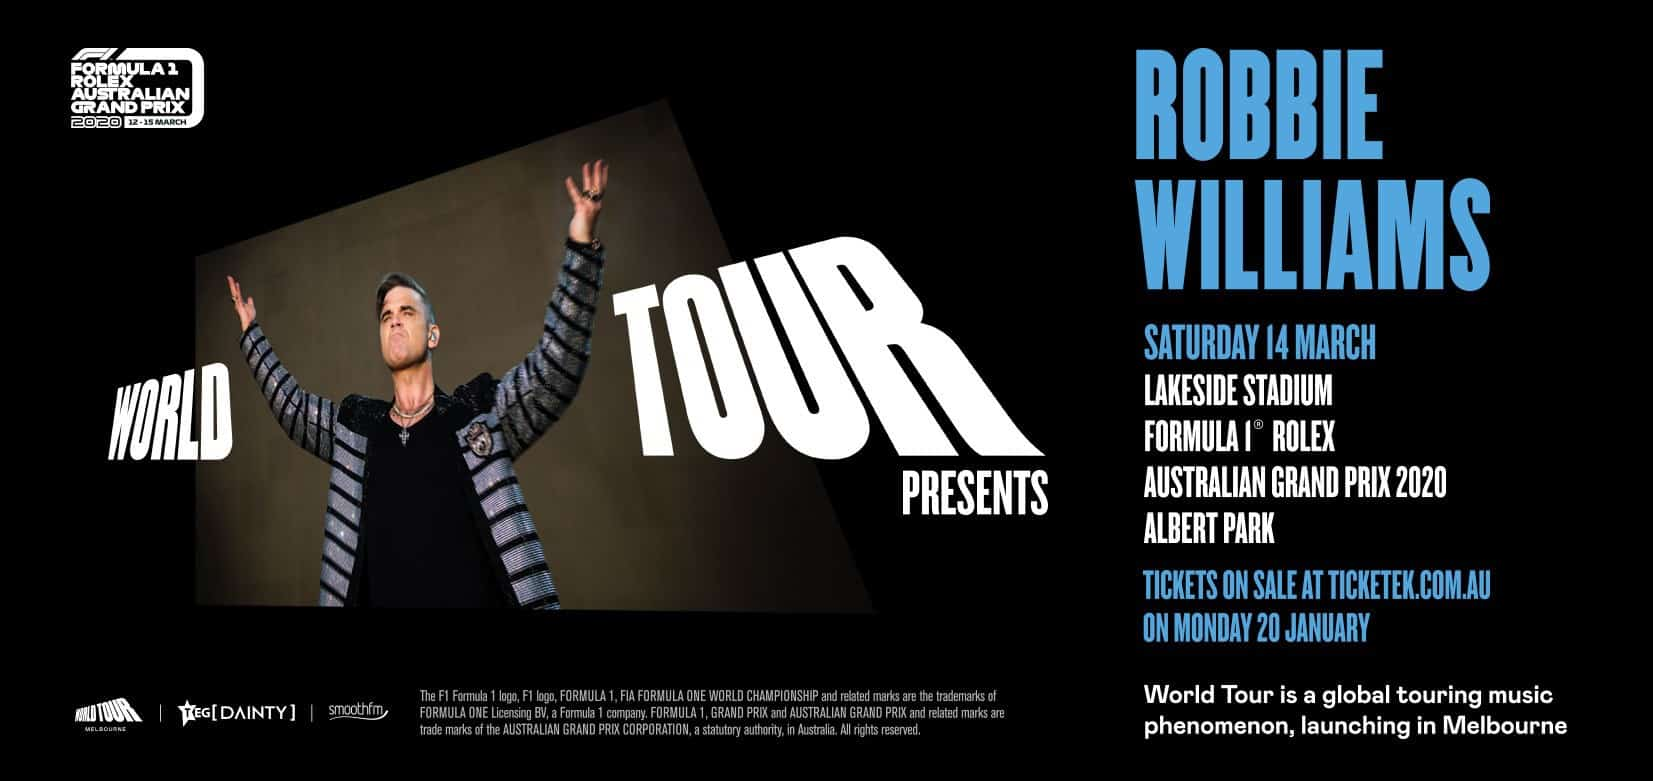 Scene News: Superstar ROBBIE WILLIAMS Confirmed to Headline the Inaugural World Tour